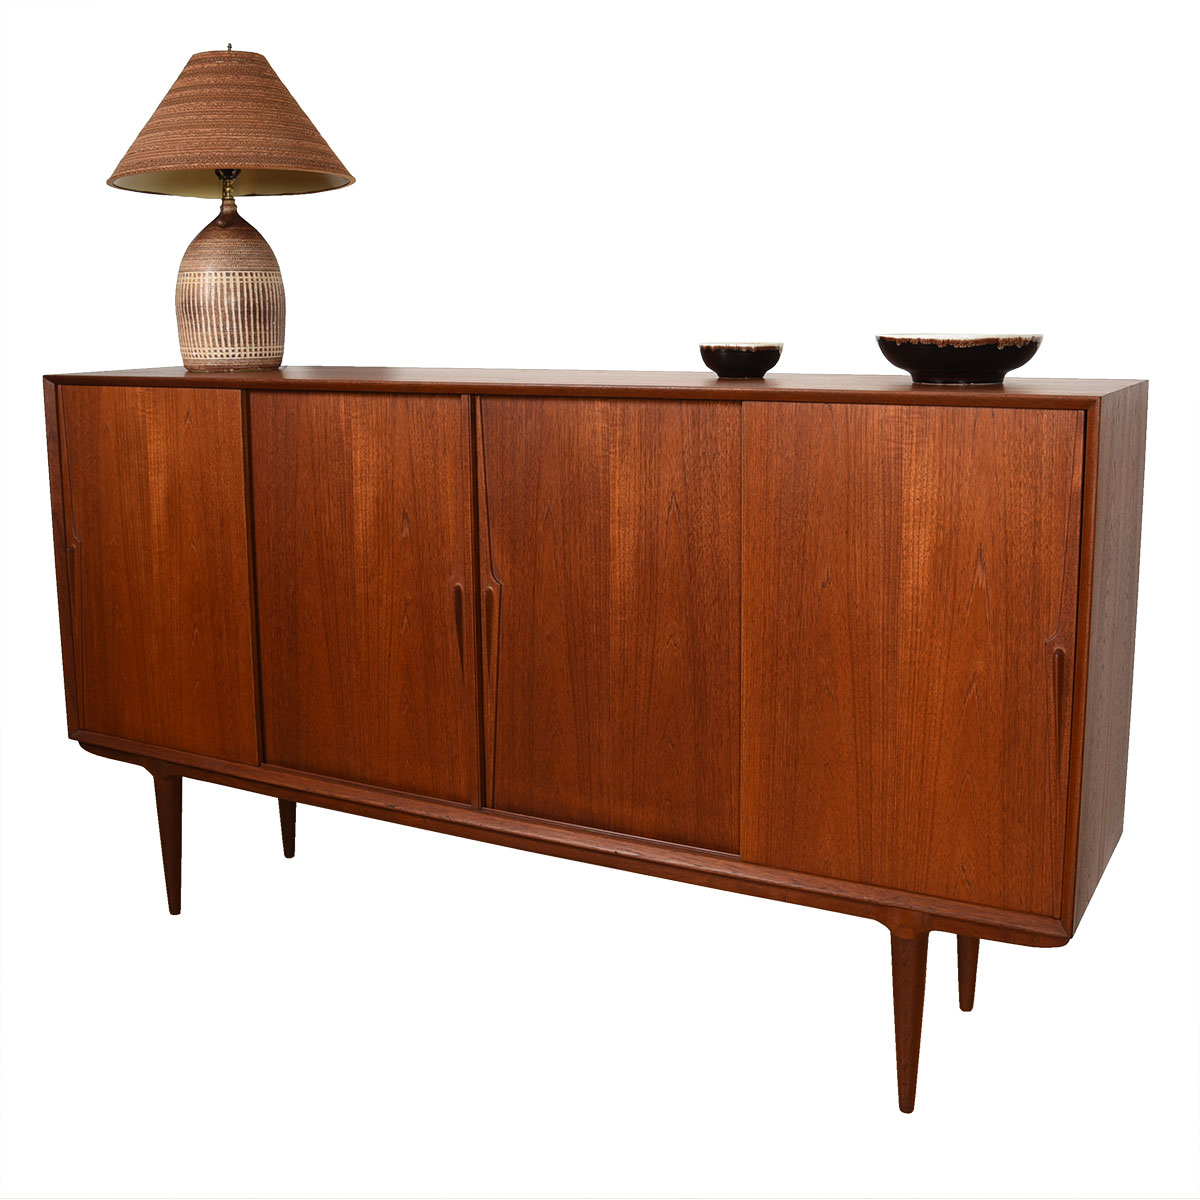 Luscious Danish Modern Teak Highboard / Room Divider